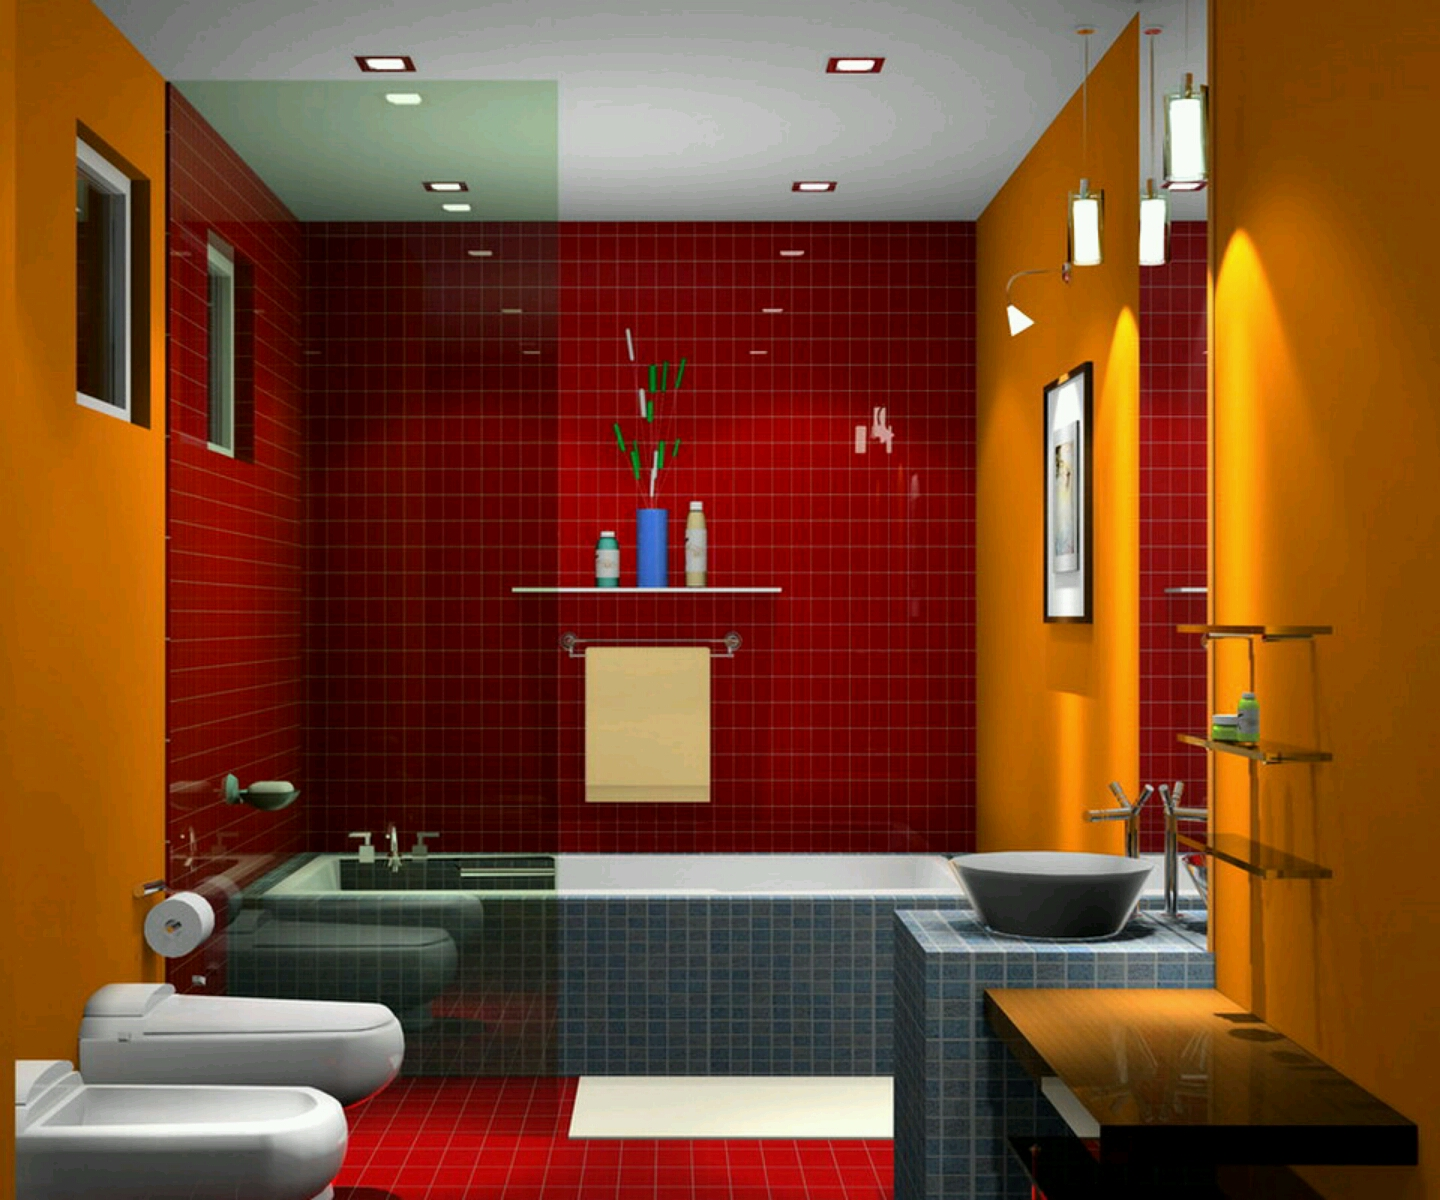 Bathroom Designs Pakistani luxury bathrooms designs ideas » modern home designs